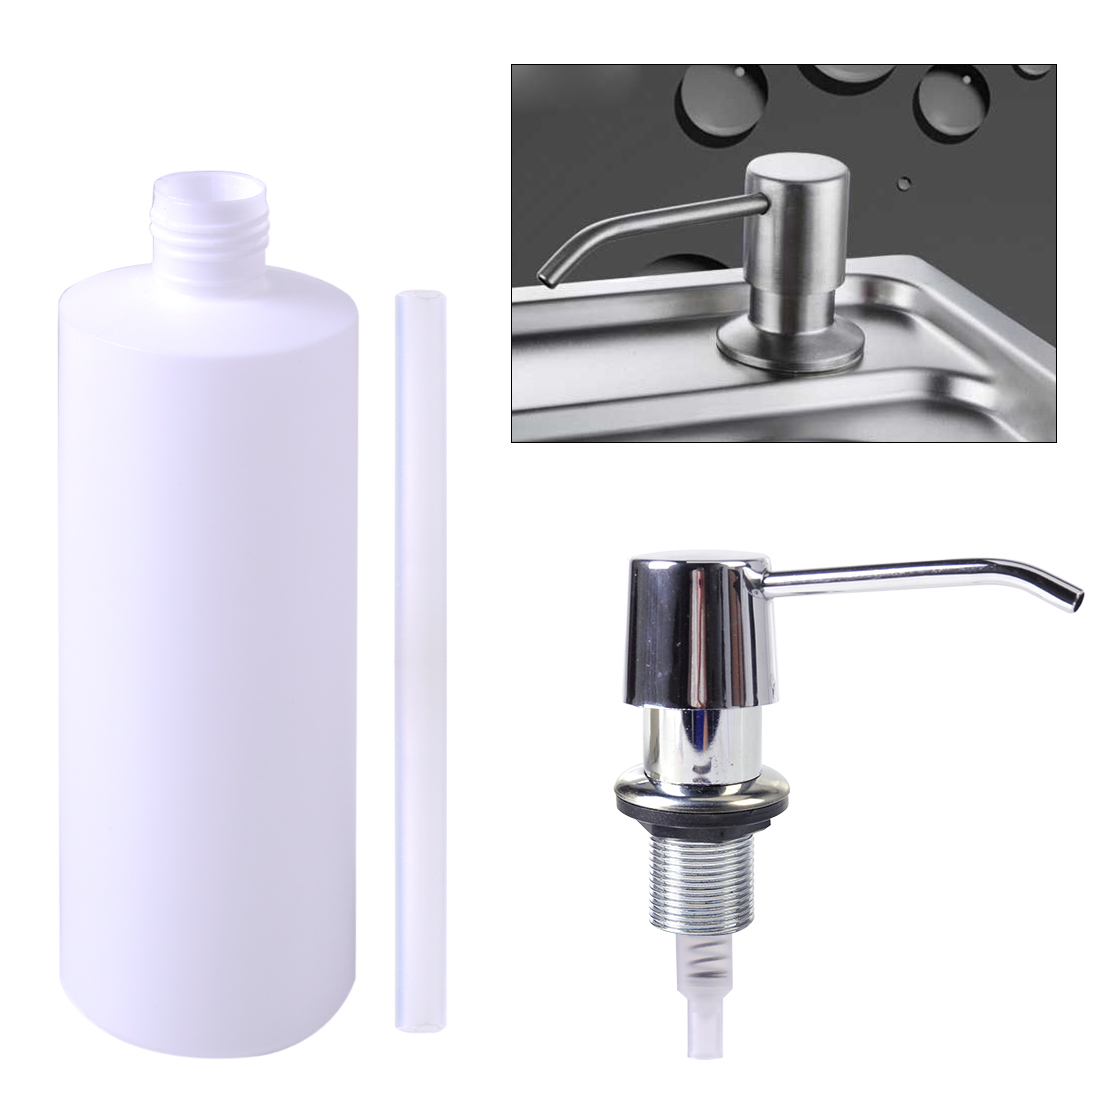 Bathroom Sink Liquid Soap Holder Dispenser Plastic Kitchen